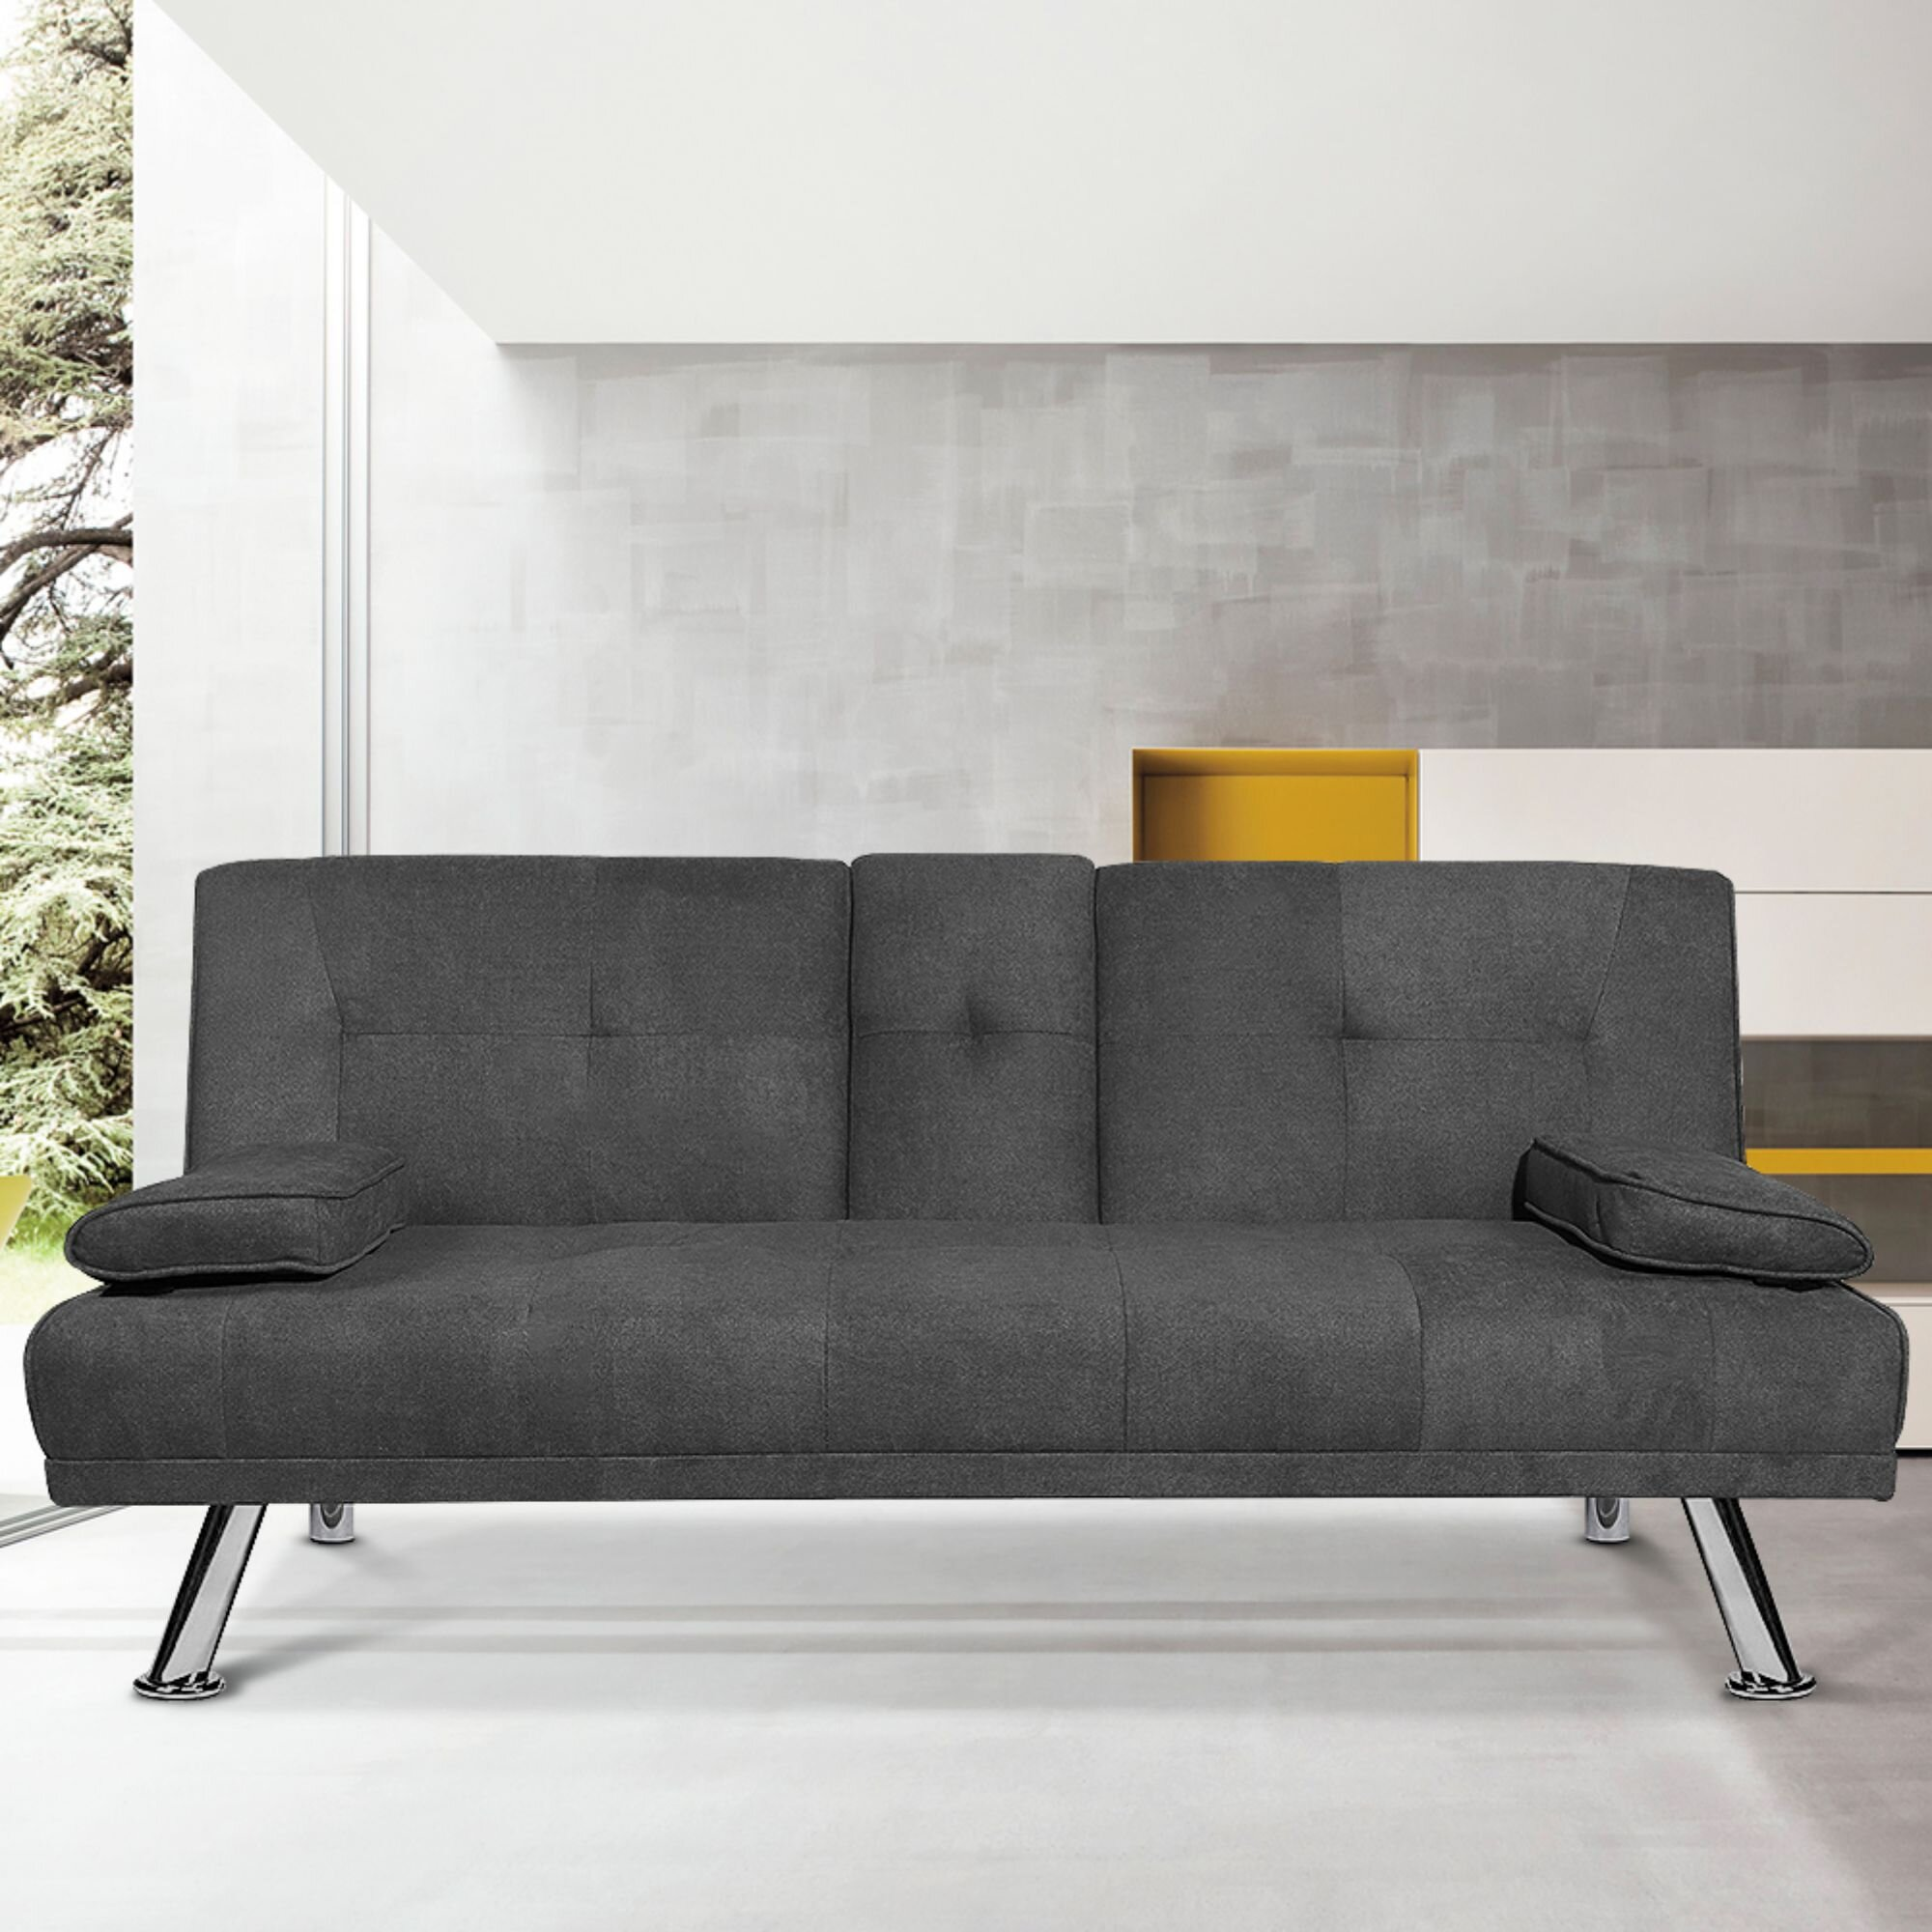 Modern Sleeper Sofa With Removable Armrest And 2 Cup Holders Fold Up Down Recliner Couch With 5 Metal Legs Convertible Futon Sofa Bed Twin Size Sofa For Living Room Pu Leather